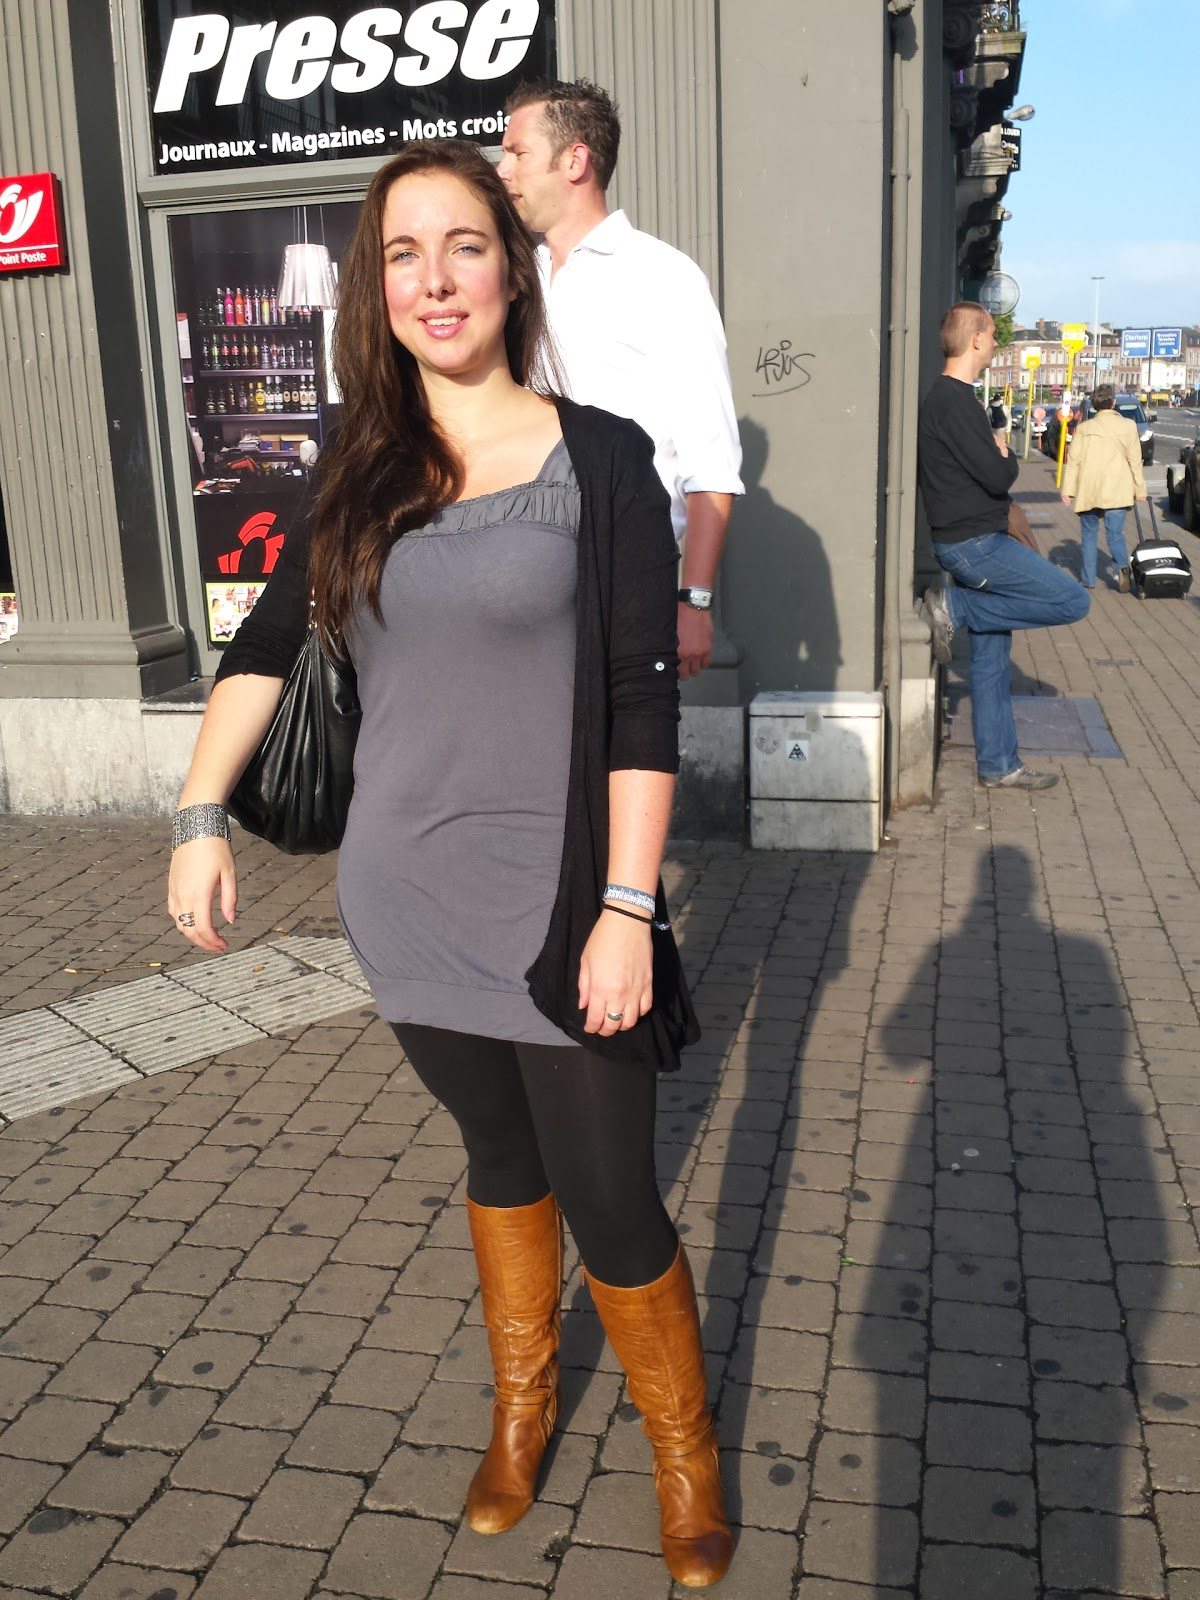 Low Street Fashion: Dress/Tunic with leggings and boots - Robe/Tunique avec legging et bottes